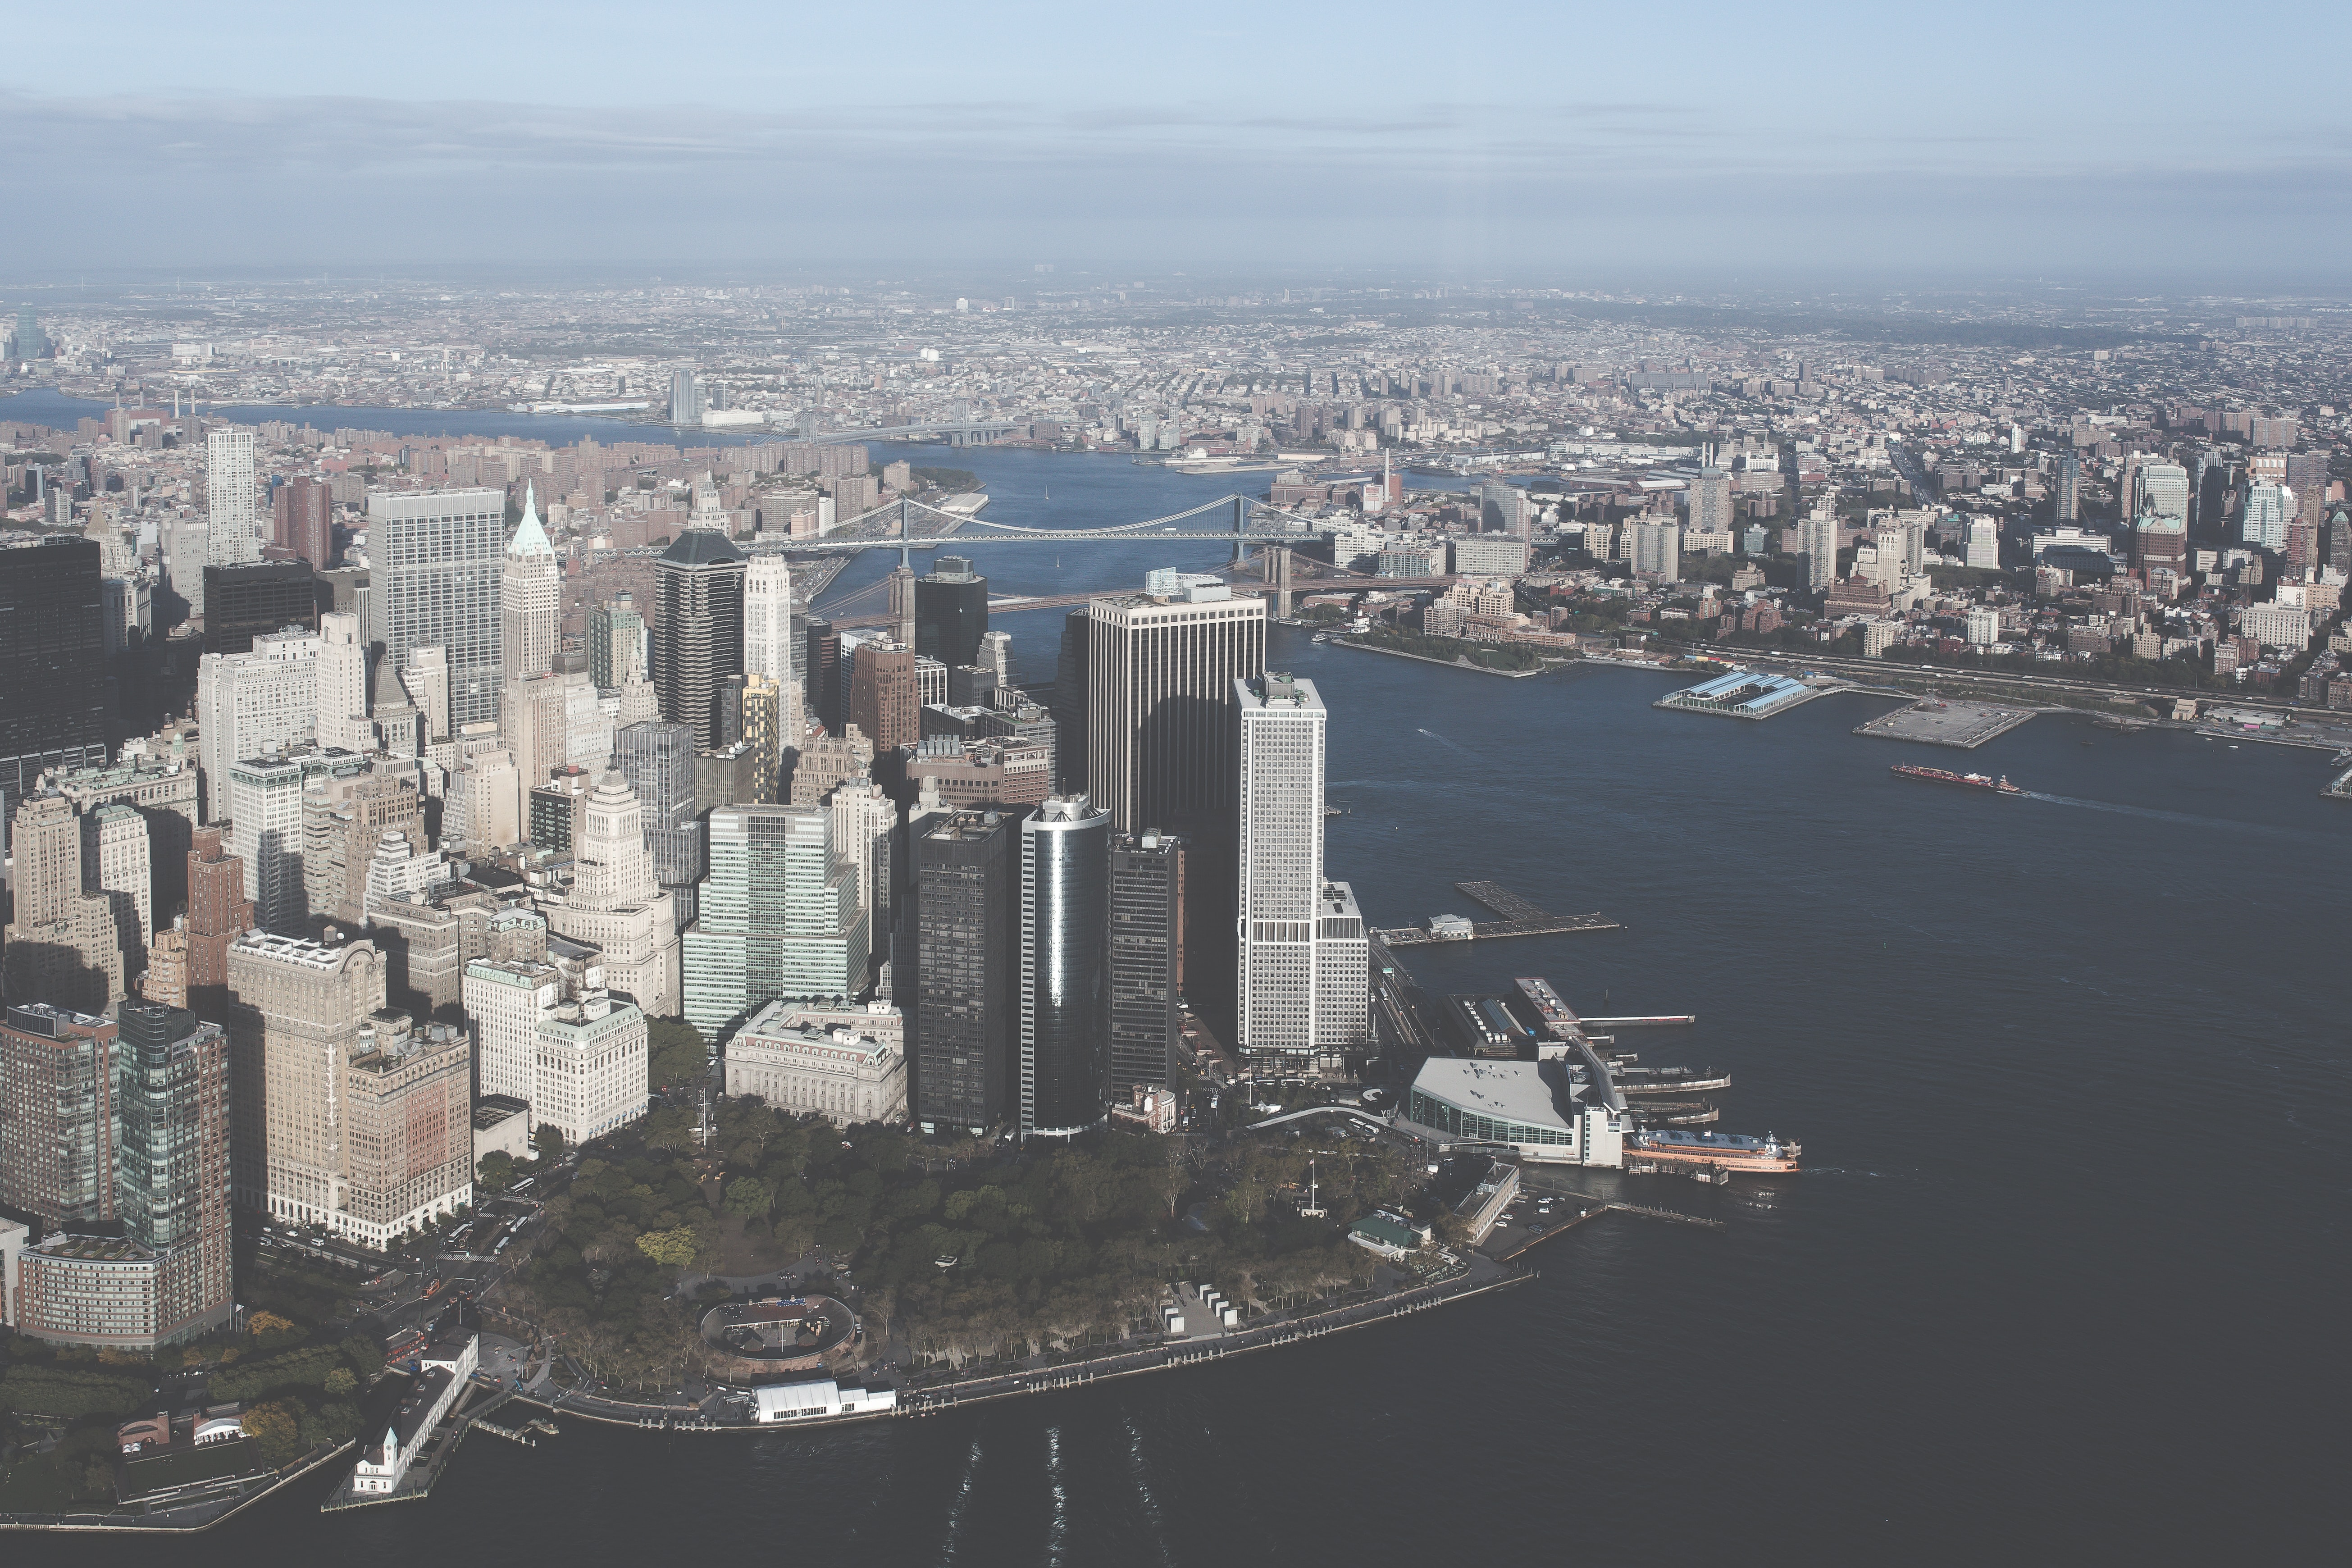 A cityscape view showing a business area with sky scrapers and a riverside harbor in the New York city